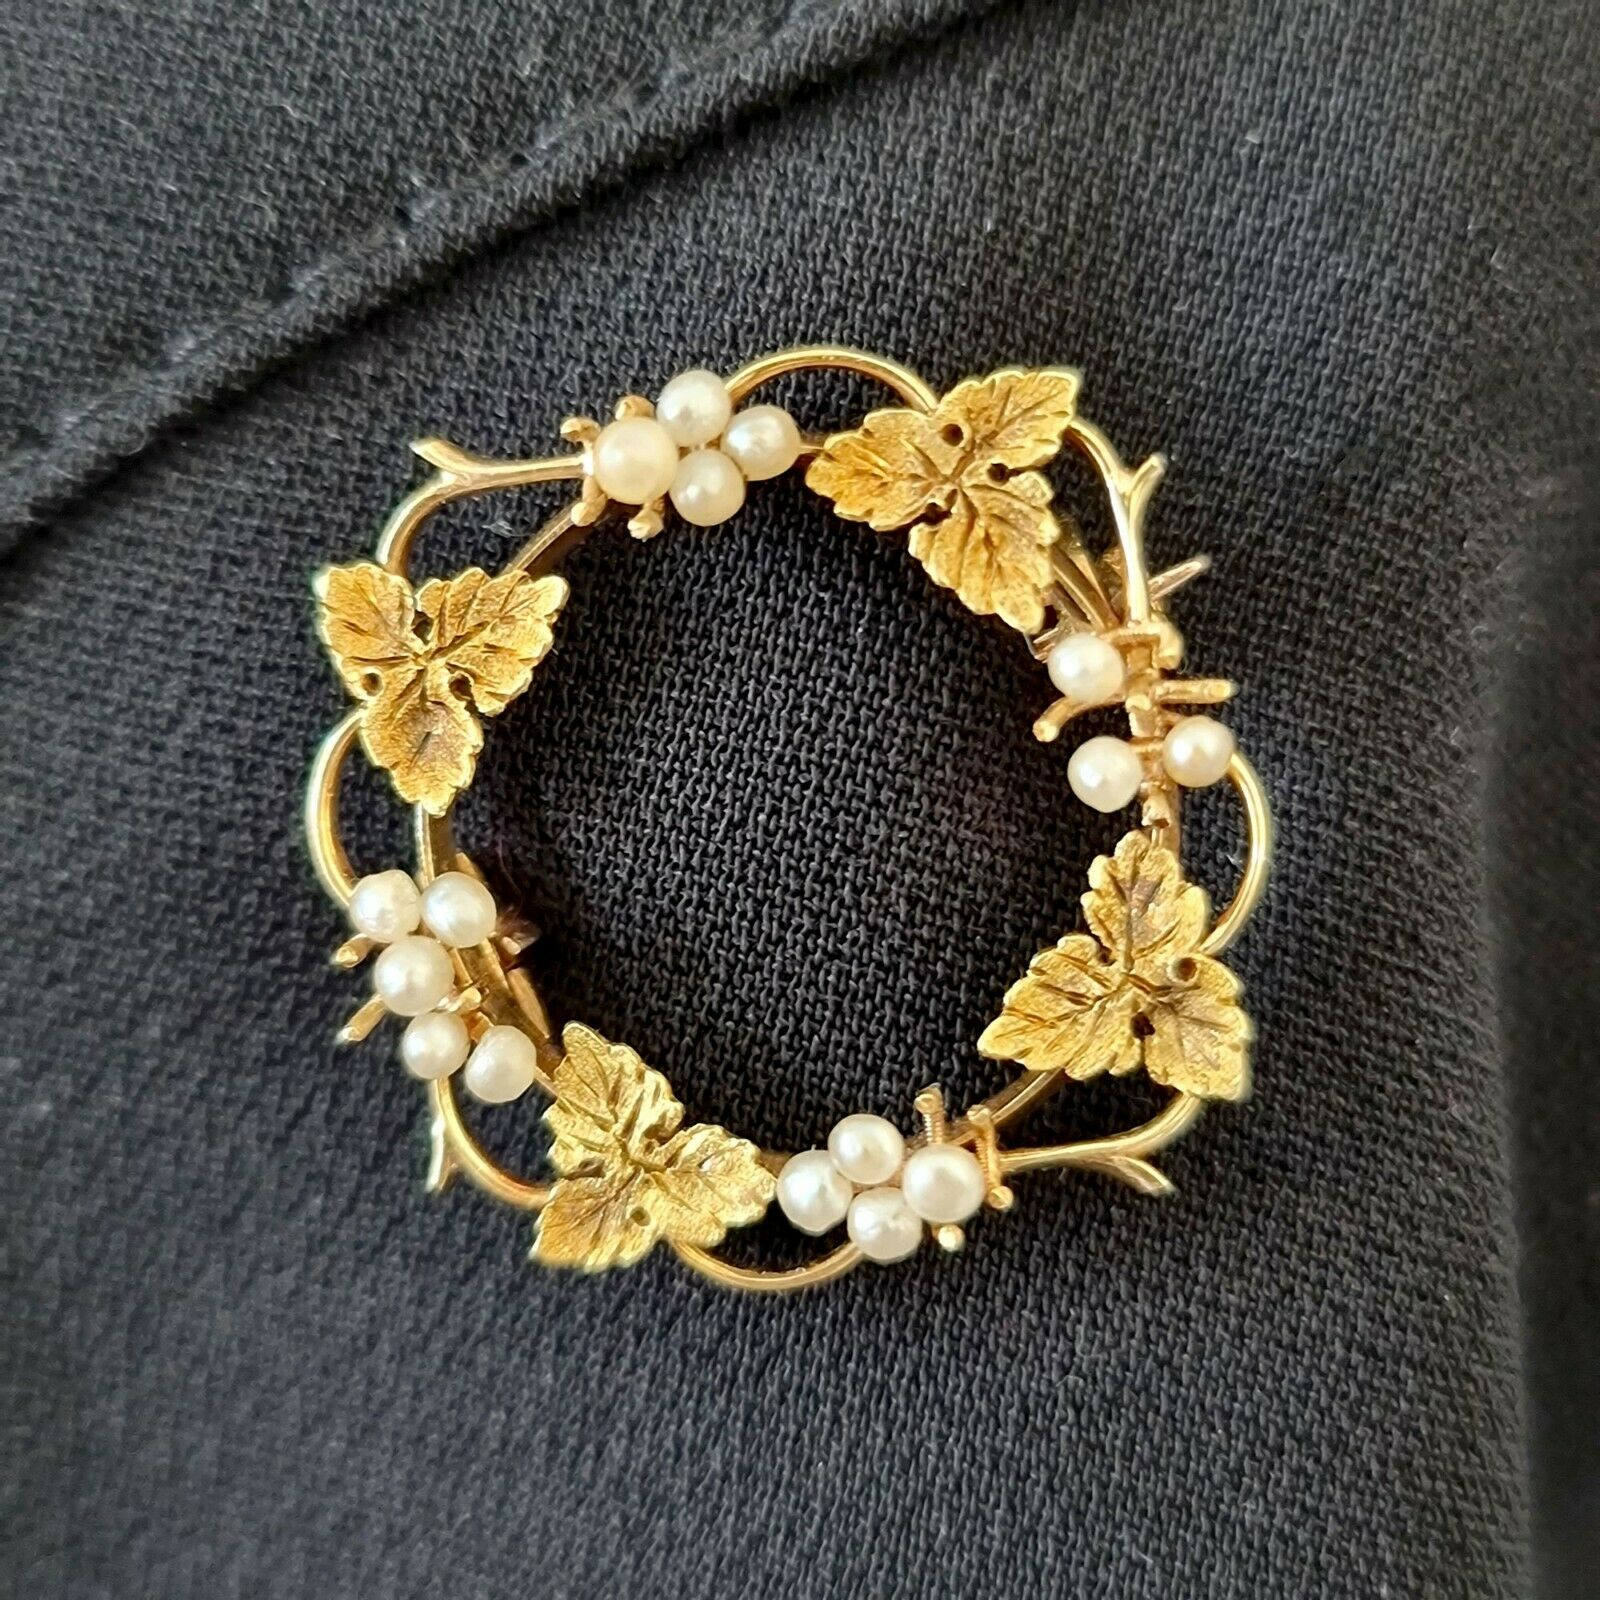 Victorian 15ct, 15k, 625 Gold Seed Pearl, vine leaf and grape brooch, Circa 1880